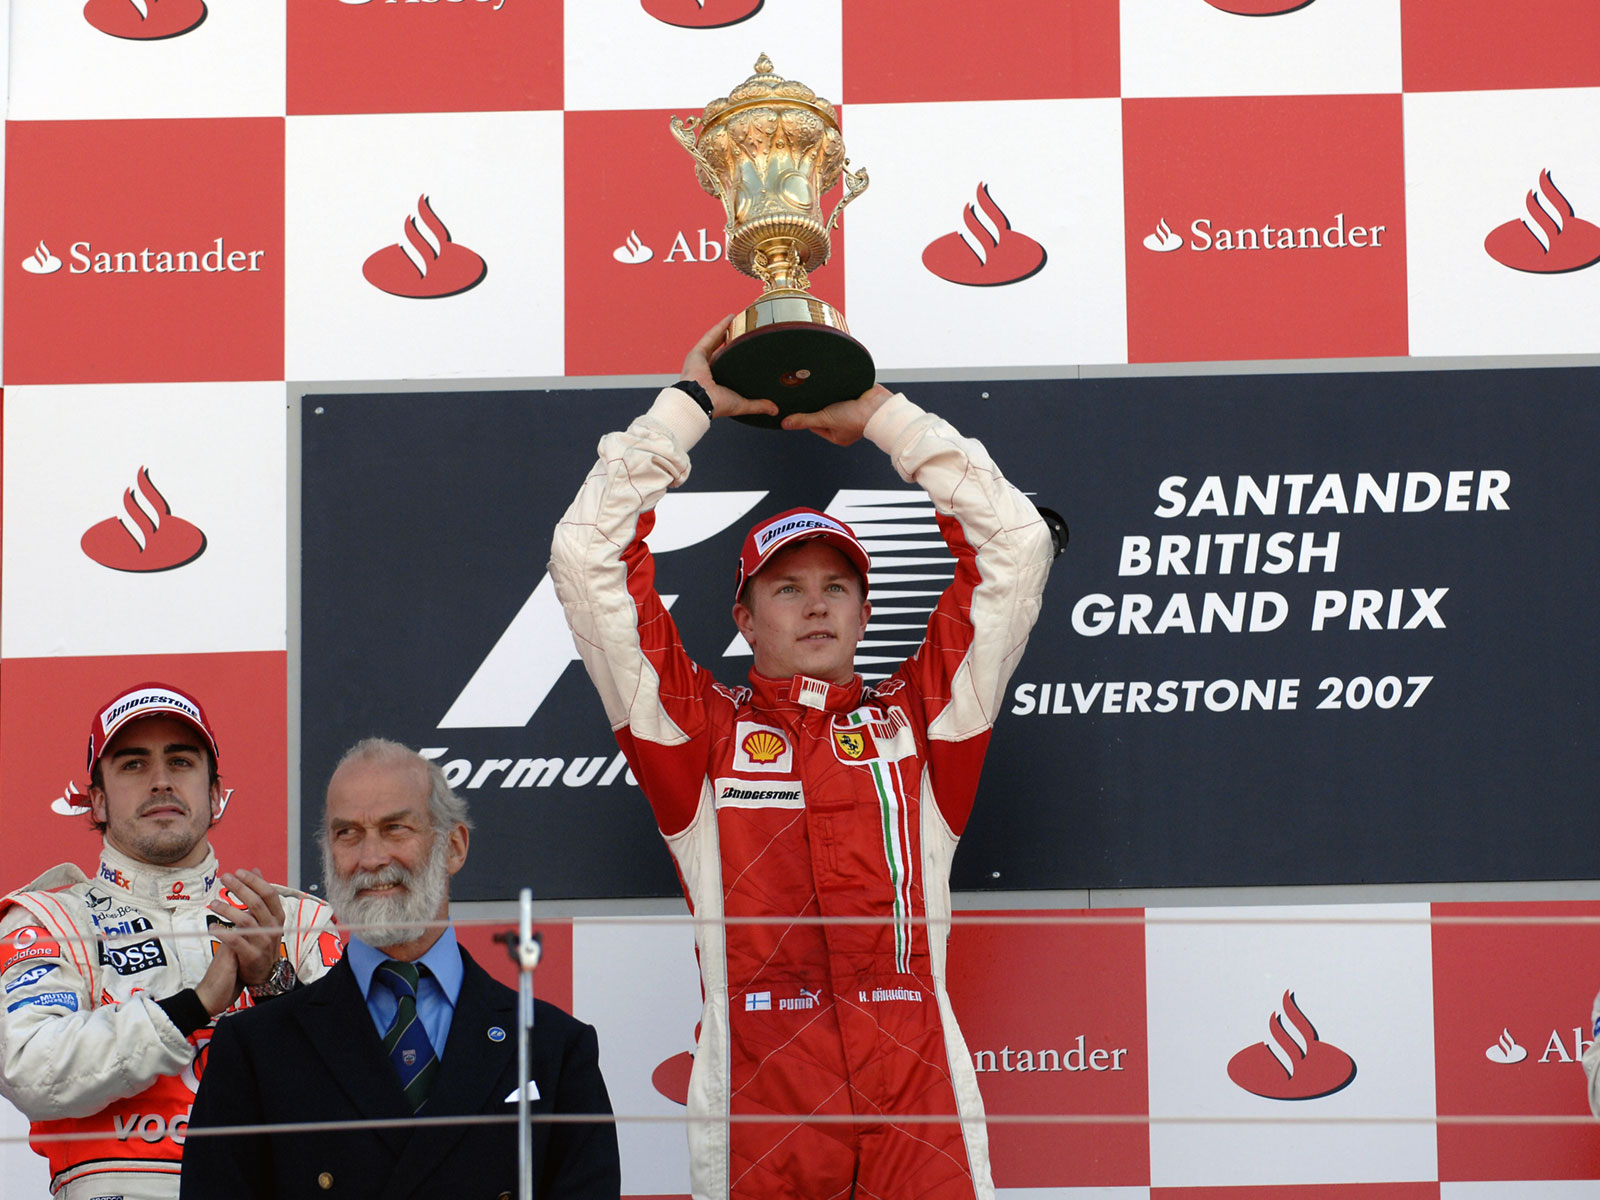 Results 2007 Formula 1 Grand Prix of Great Britain